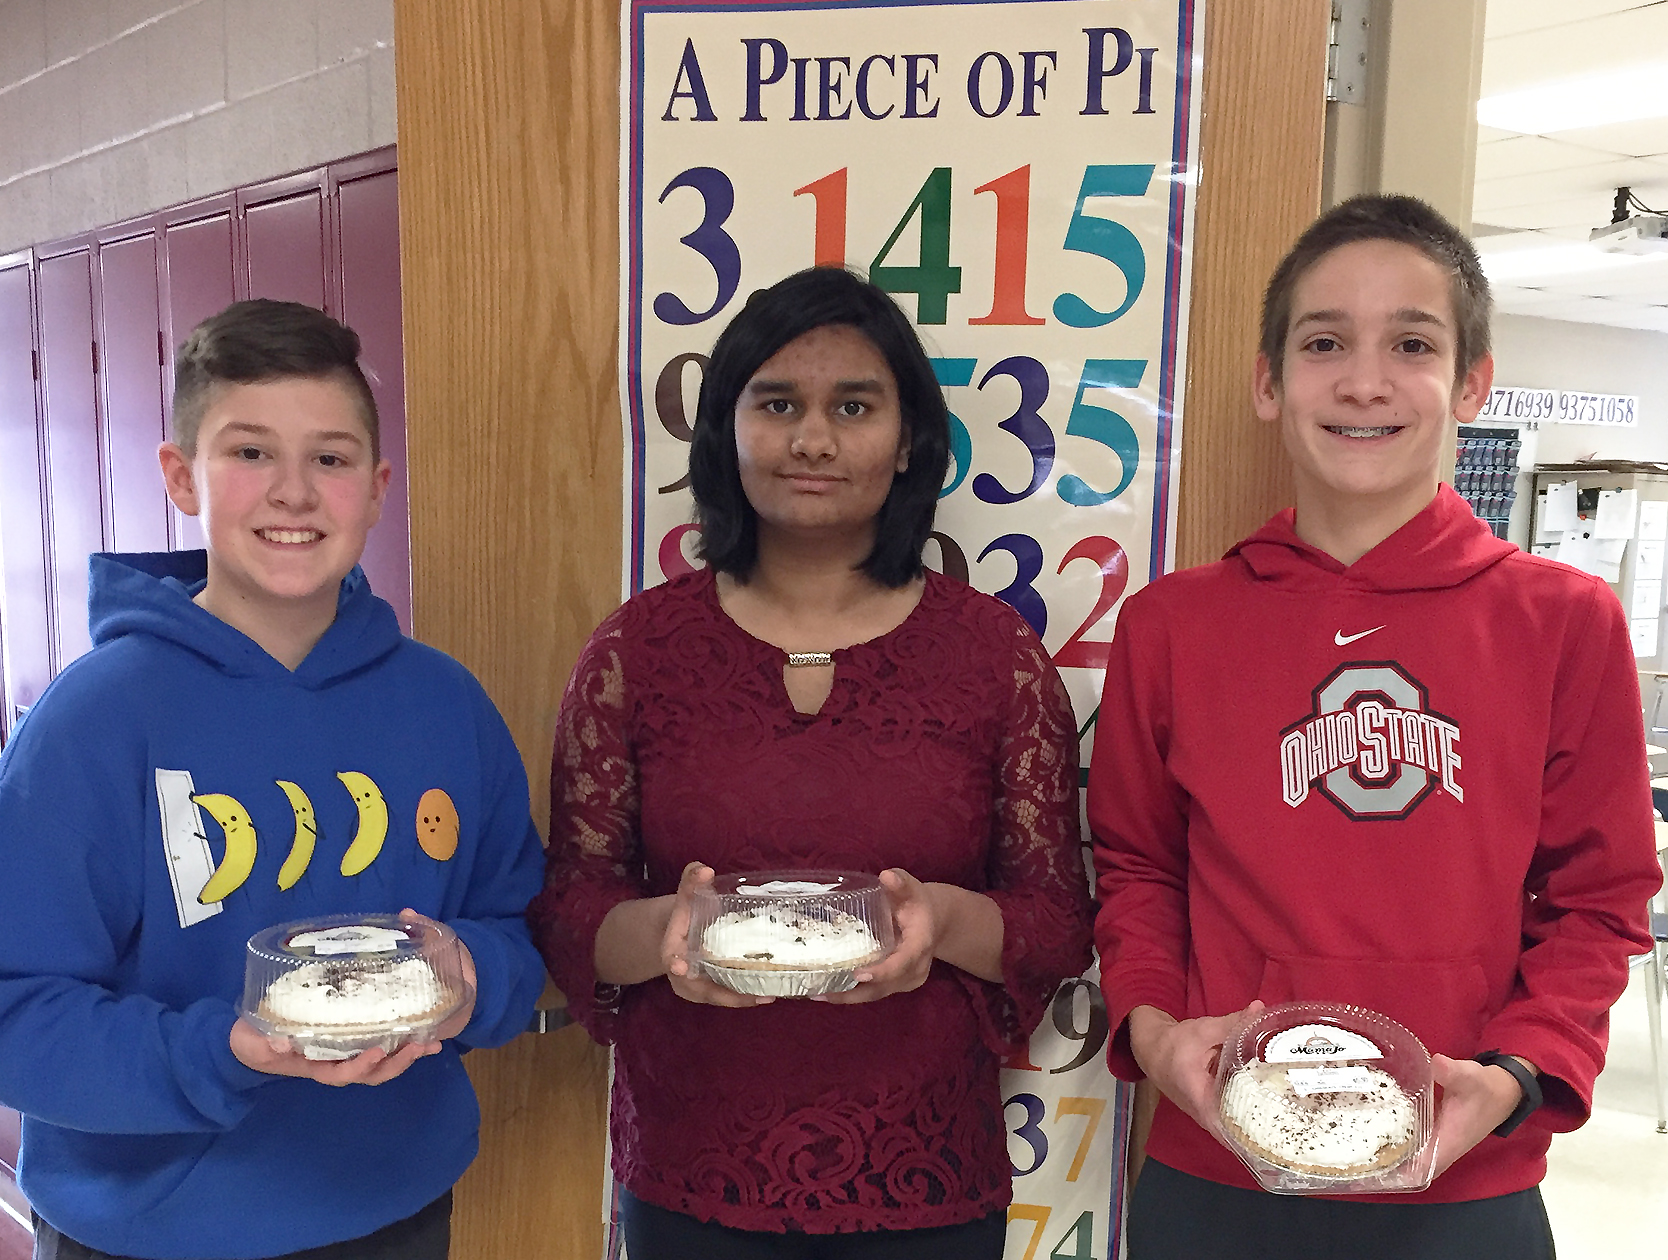 Pictured from left are Ethan Miller, Nandini Pande and Elijah Hadler.